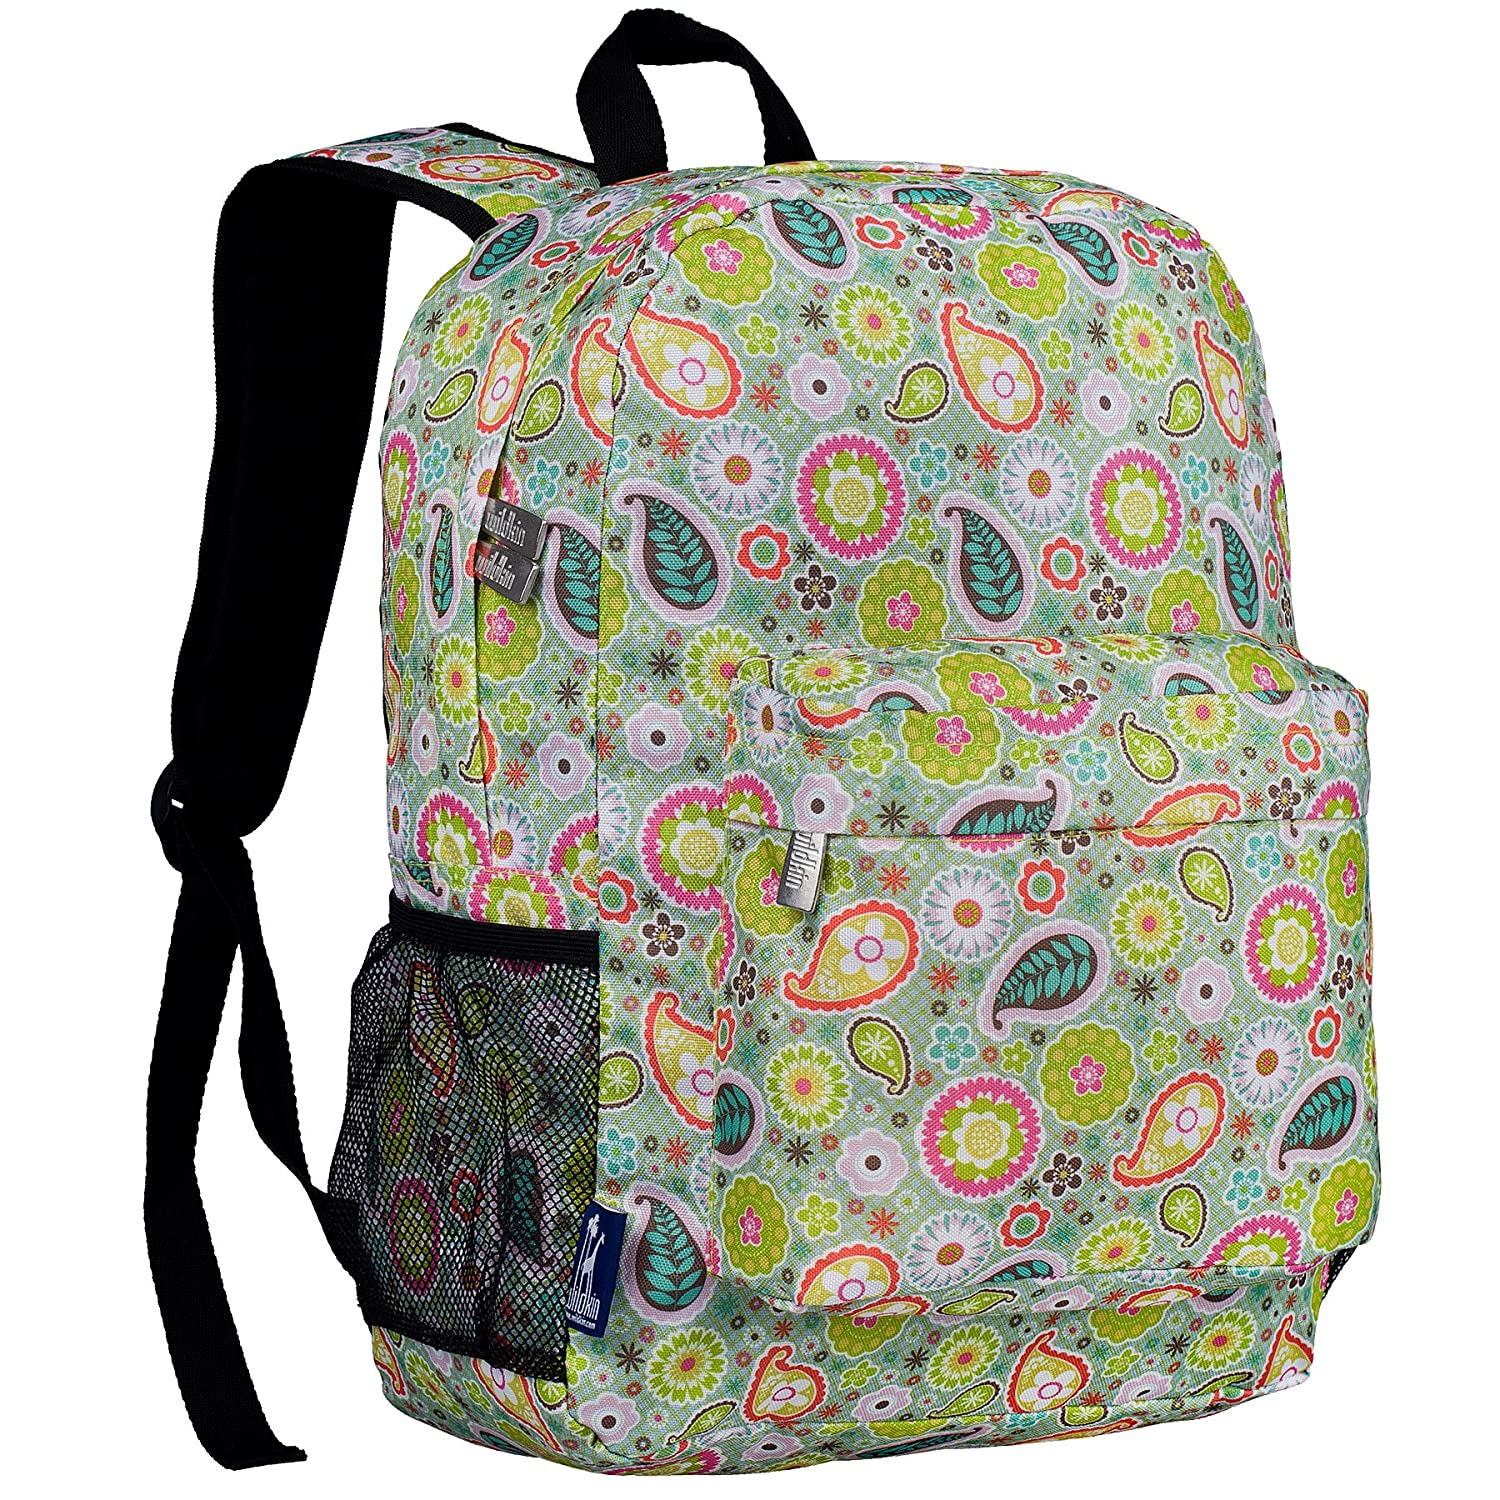 Accessory Innovations Mermaid Barbie Backpack for Girls with Side Mesh Pockets B18BA37207TU